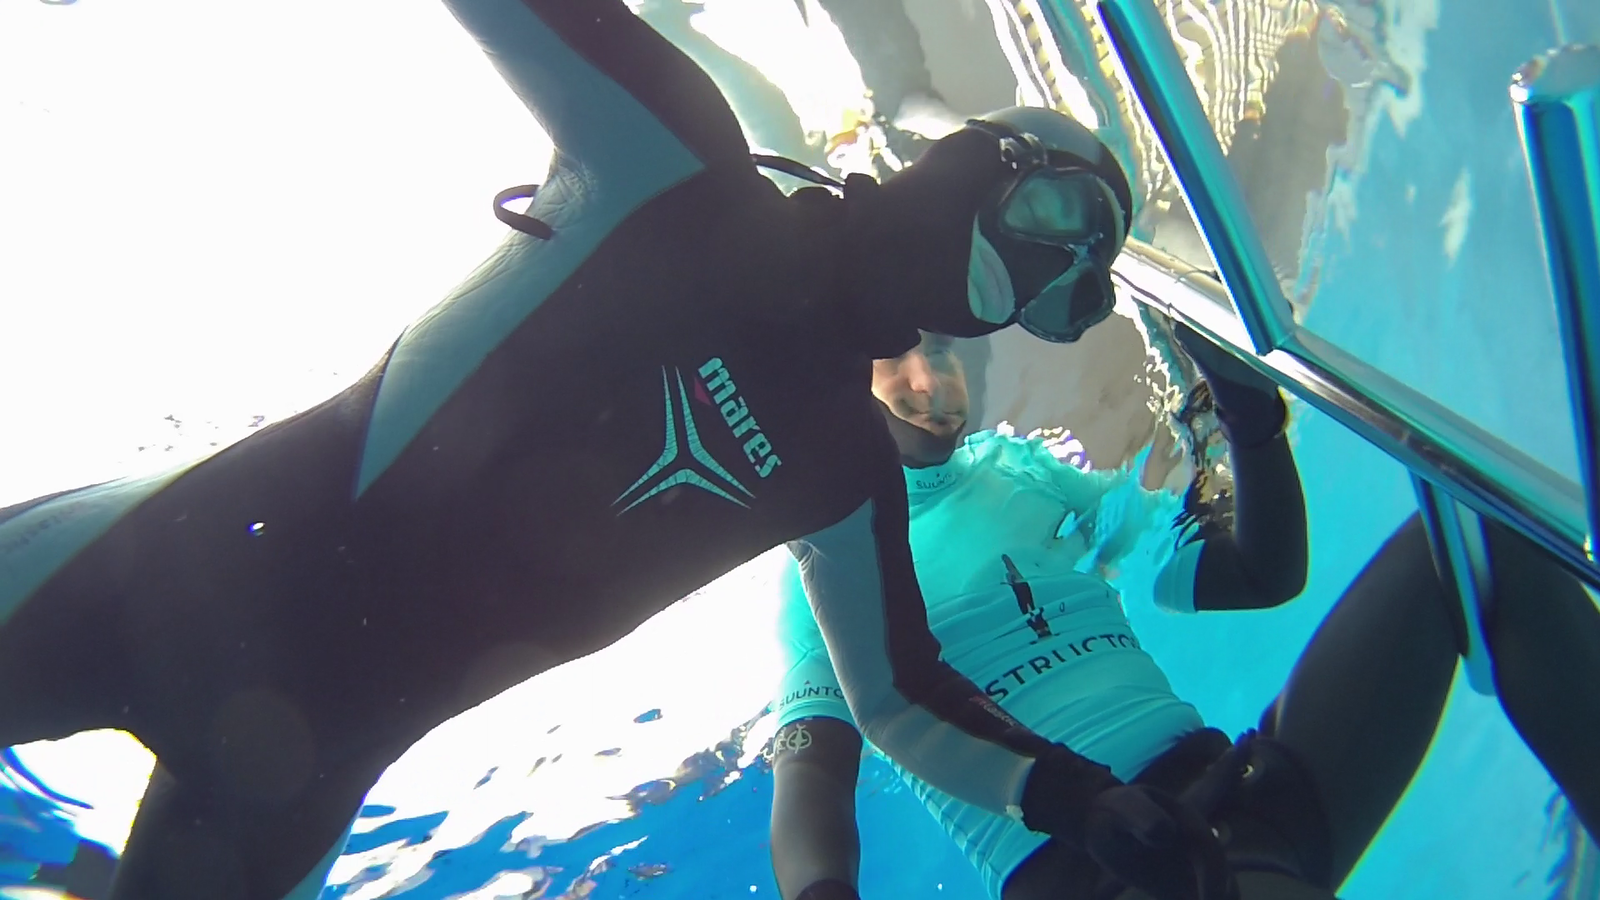 Frederiek improved his personal best in static apnea by more than 1 minute during this session!